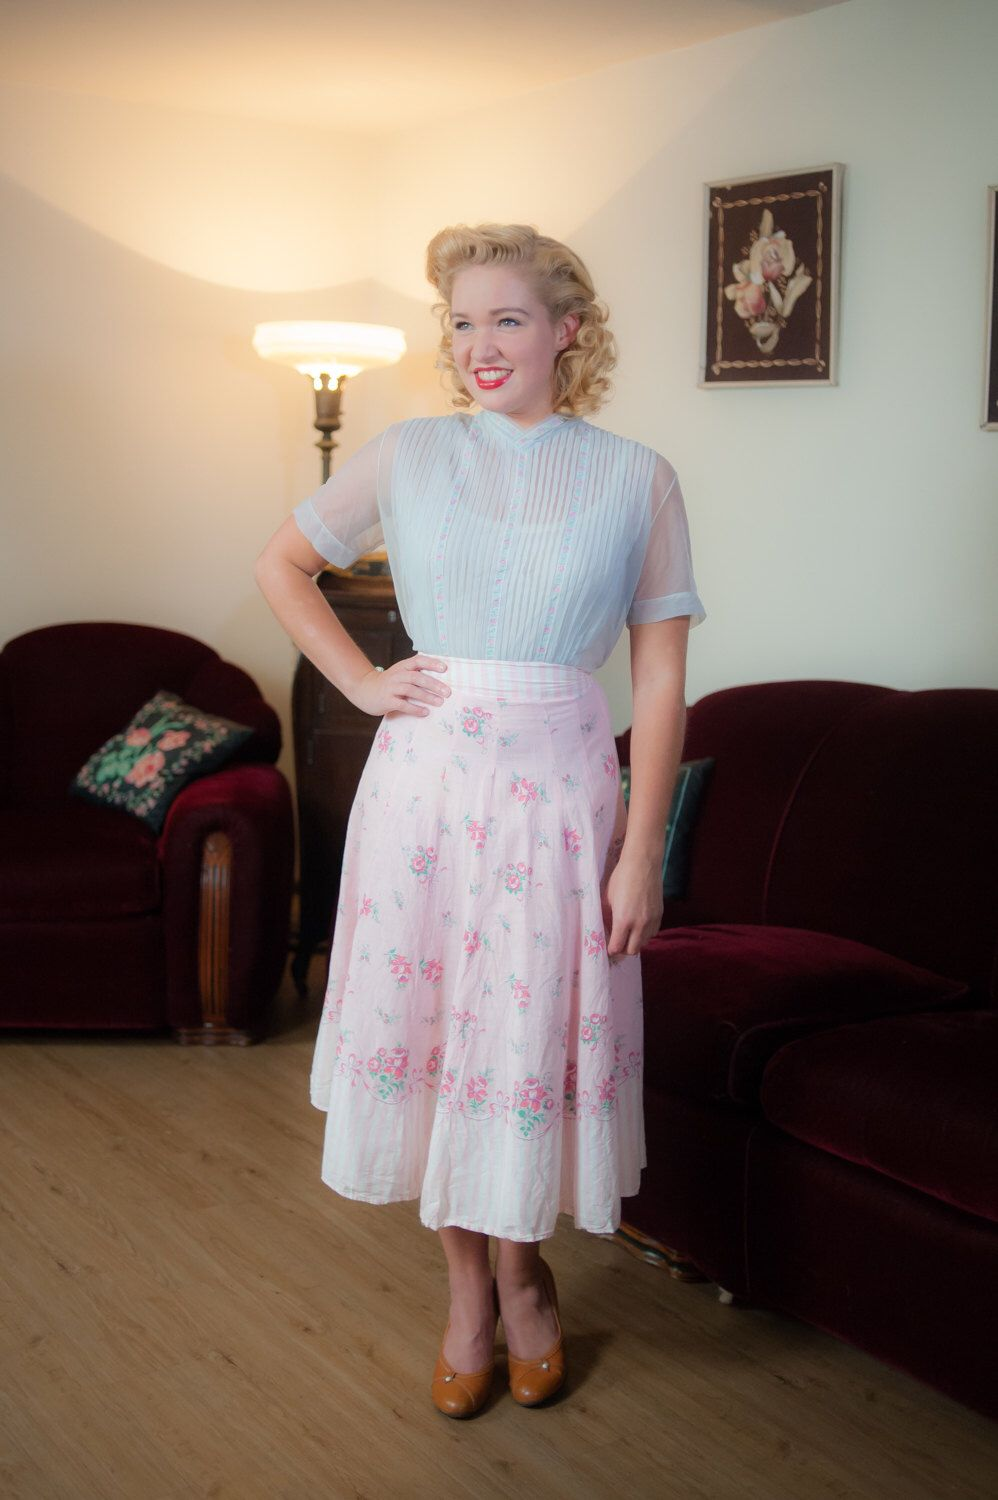 Vintage 1940s Skirt - Sweet Pink and White Floral and Ribbons Border Print A Line 40s Skirt by FabGabs on Etsy https://www.etsy.com/ca/listing/399203803/vintage-1940s-skirt-sweet-pink-and-white